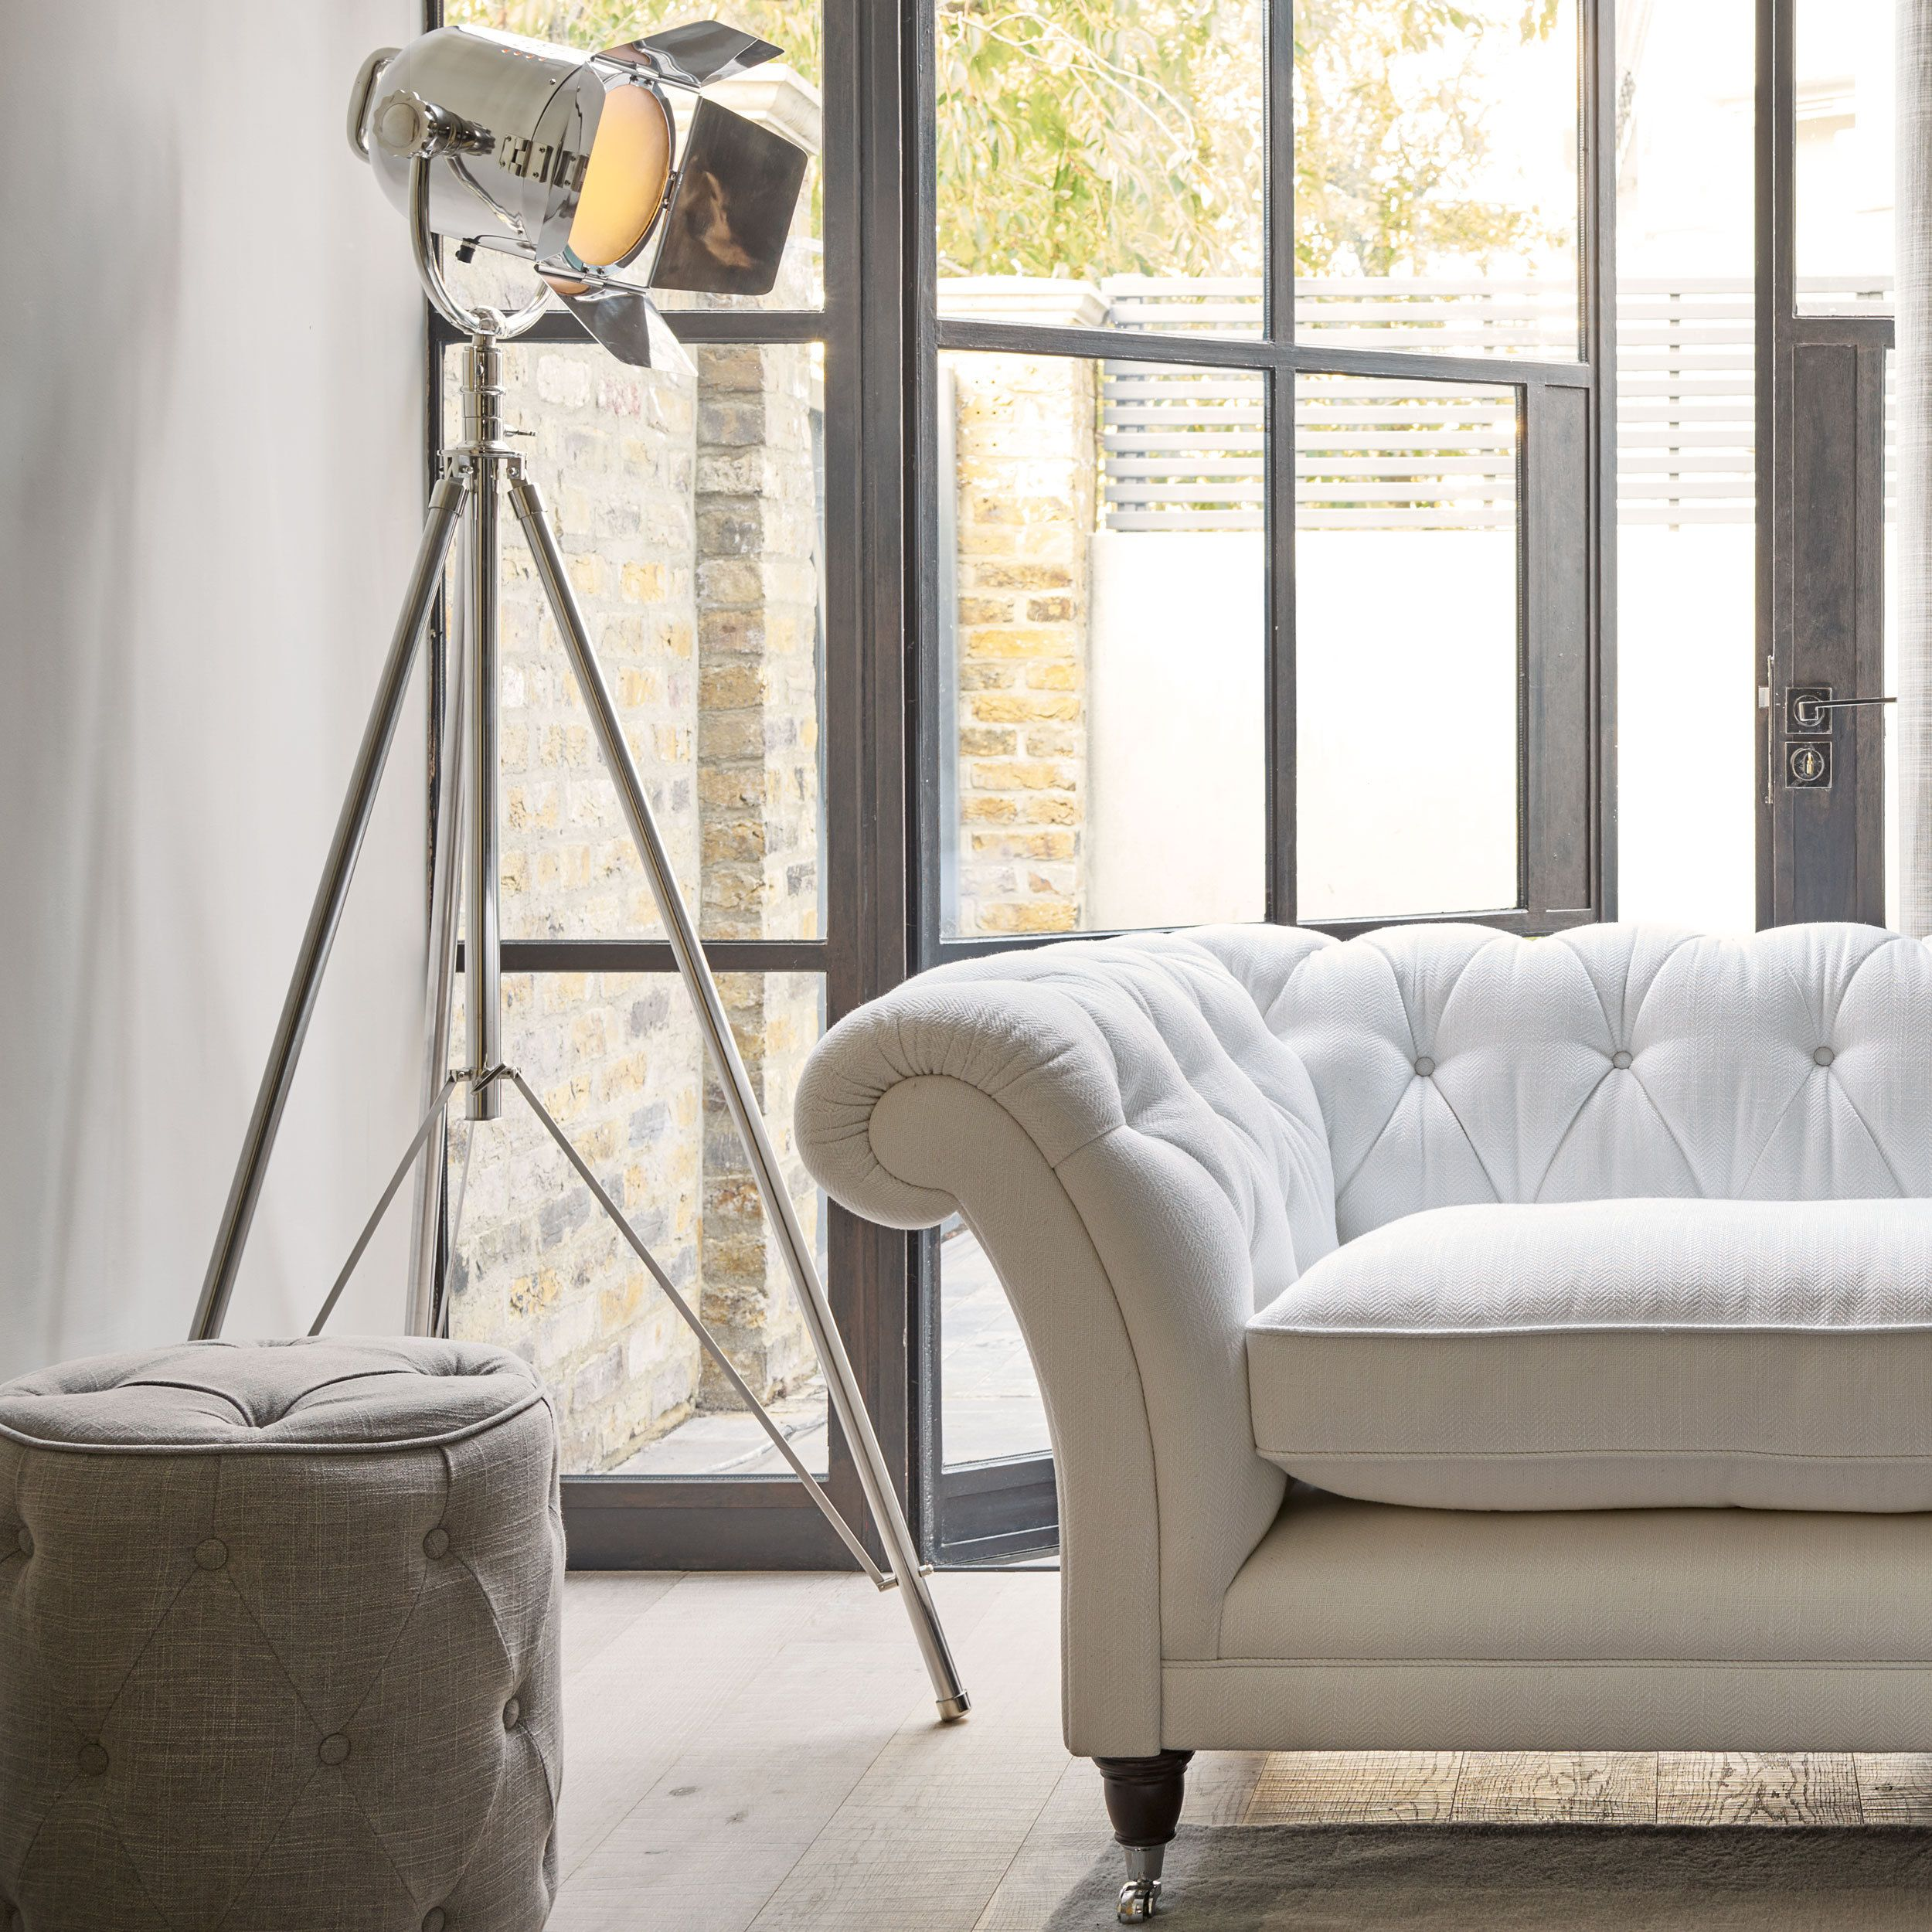 Alfred floor light at laura ashley home pinterest laura ashley alfred floor light at laura ashley mozeypictures Choice Image